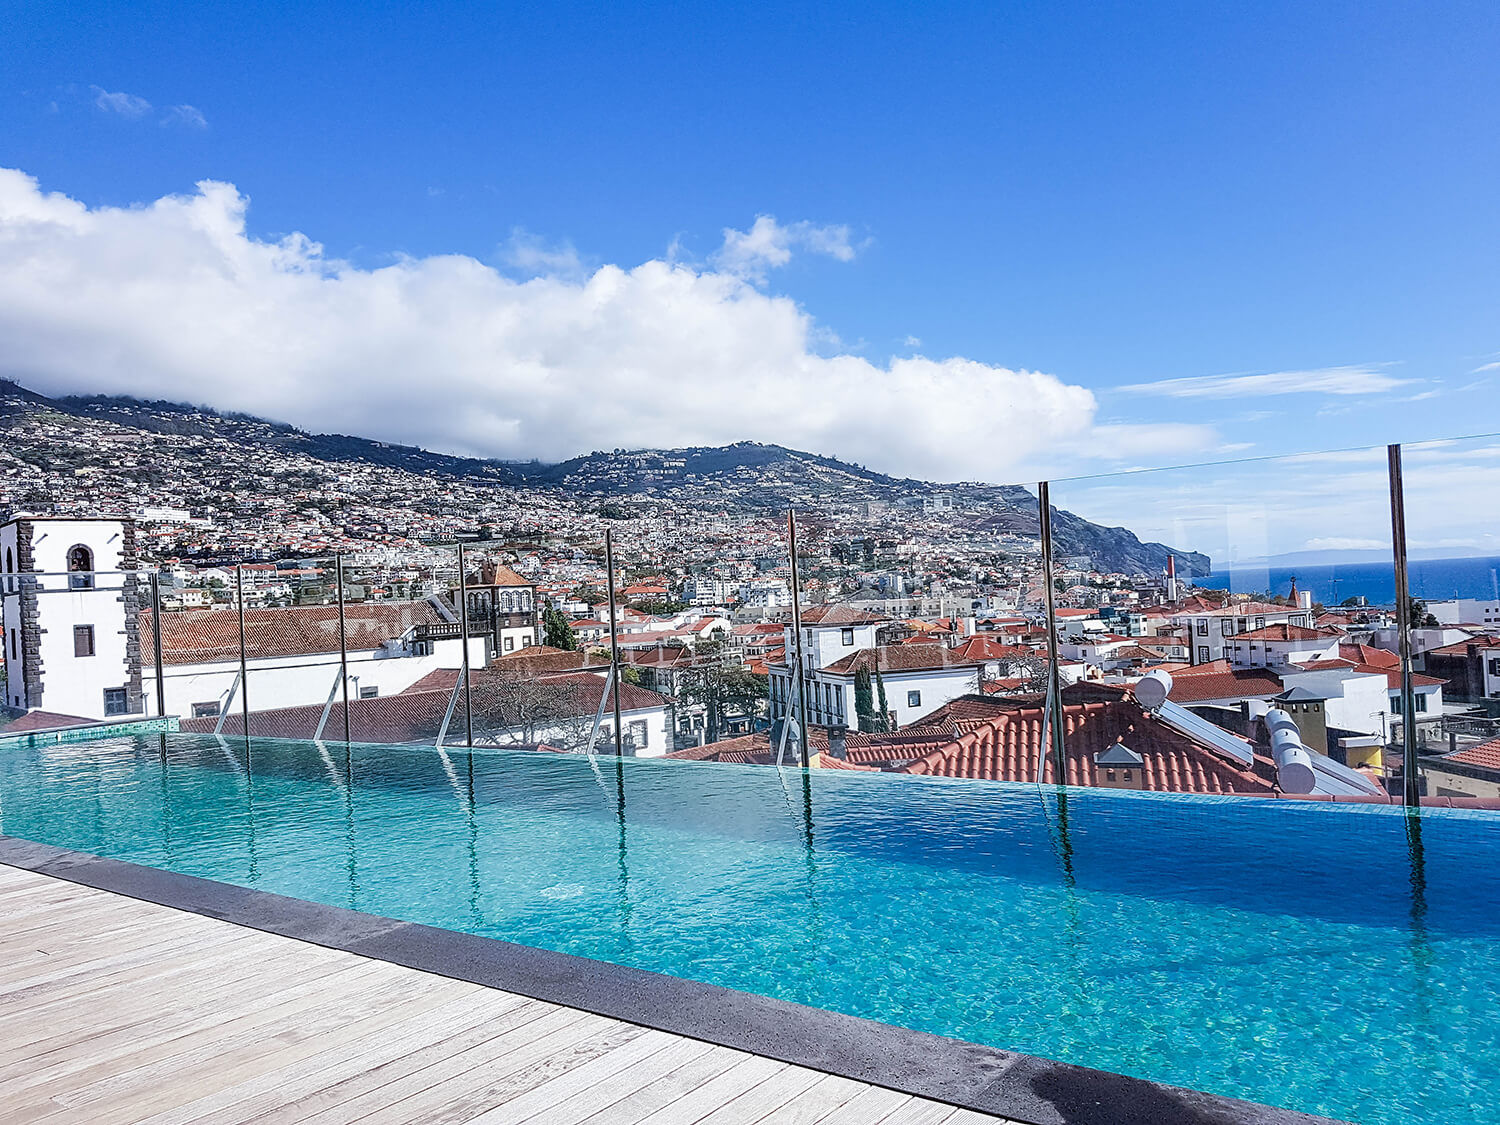 Kationette-travelblogger-nrw-Hotel-Tip-Castanheiro-Boutique-Hotel-in-Funchal-Old-Town-Madeira